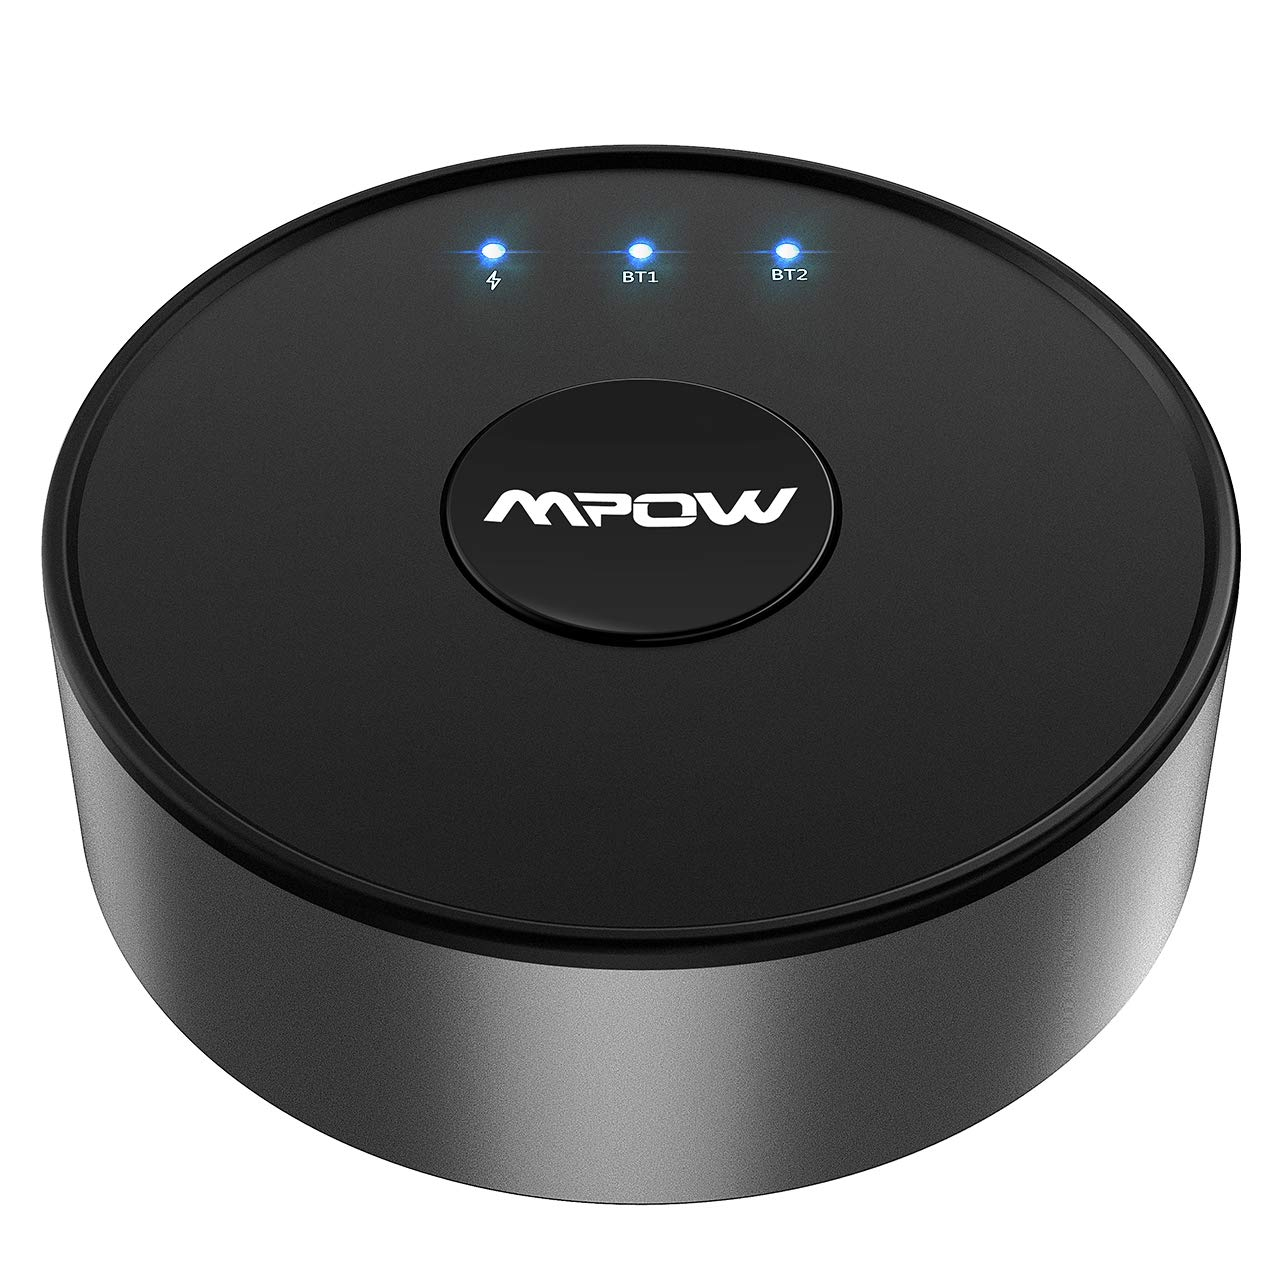 Mpow Bluetooth 5.0 Transmitter for TV, Bluetooth Audio Adapter with aptX, aptX-LL, aptX-HD for Original Voice Enjoyment, 50 Feet Range Bluetooth Kit with Hook & Loop Tape,No Battery for Always Standby by Mpow